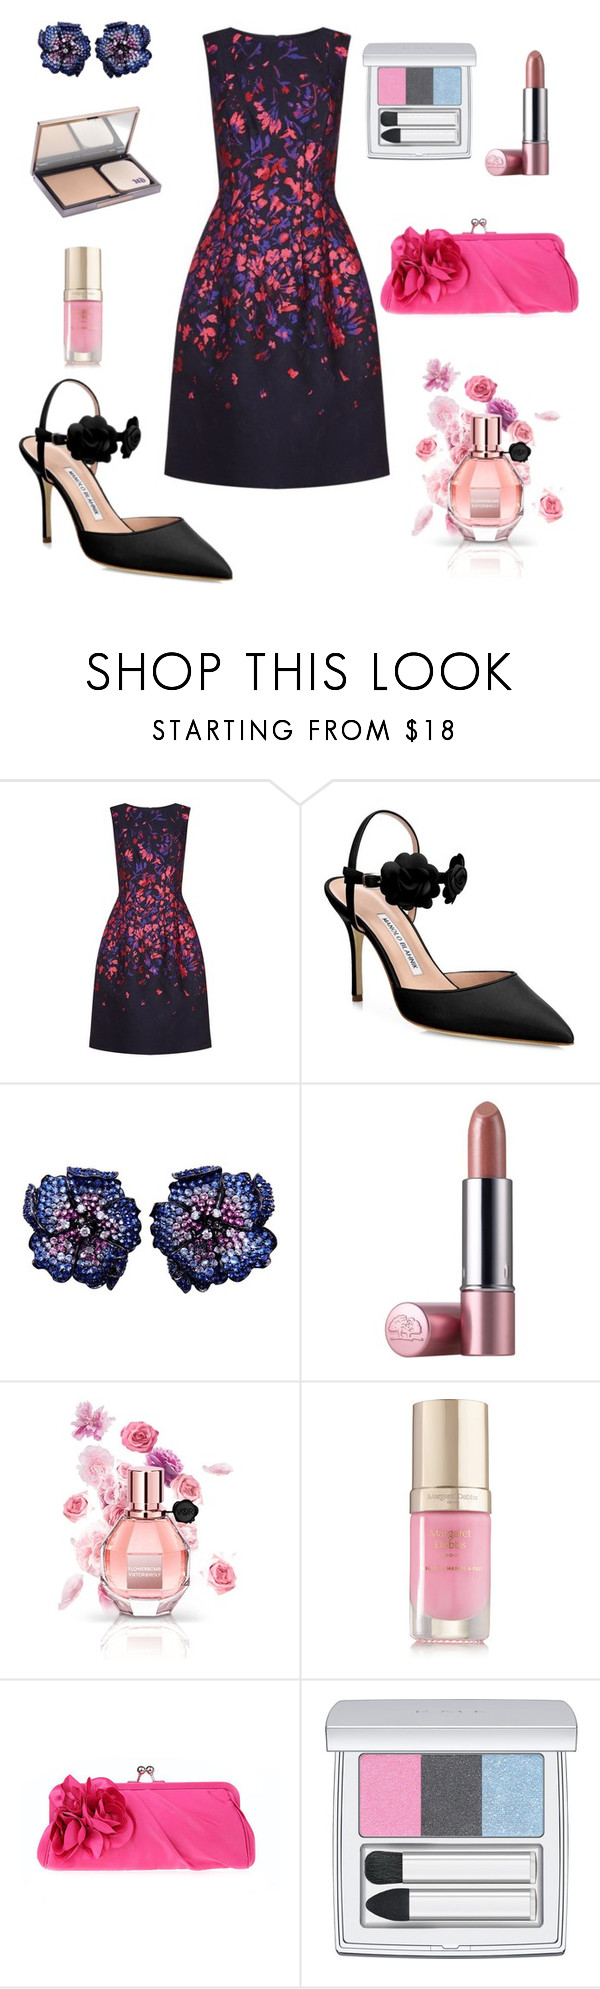 """Untitled #610"" by elizabeth-buttery ❤ liked on Polyvore featuring Oscar de la Renta, Manolo Blahnik, Origins, Viktor & Rolf, Margaret Dabbs, WithChic, RMK and Urban Decay"